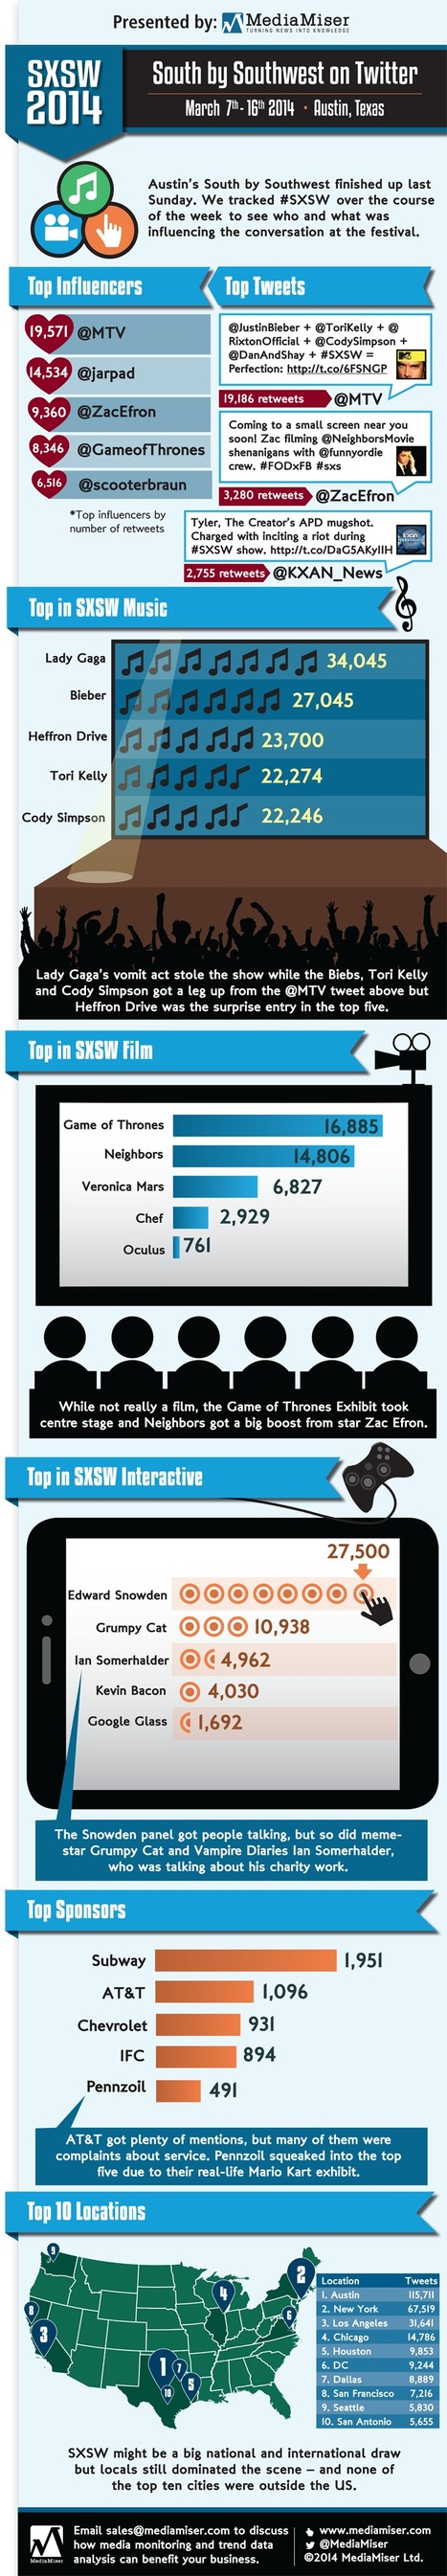 South by Southwest on Twitter | Infographics | Scoop.it